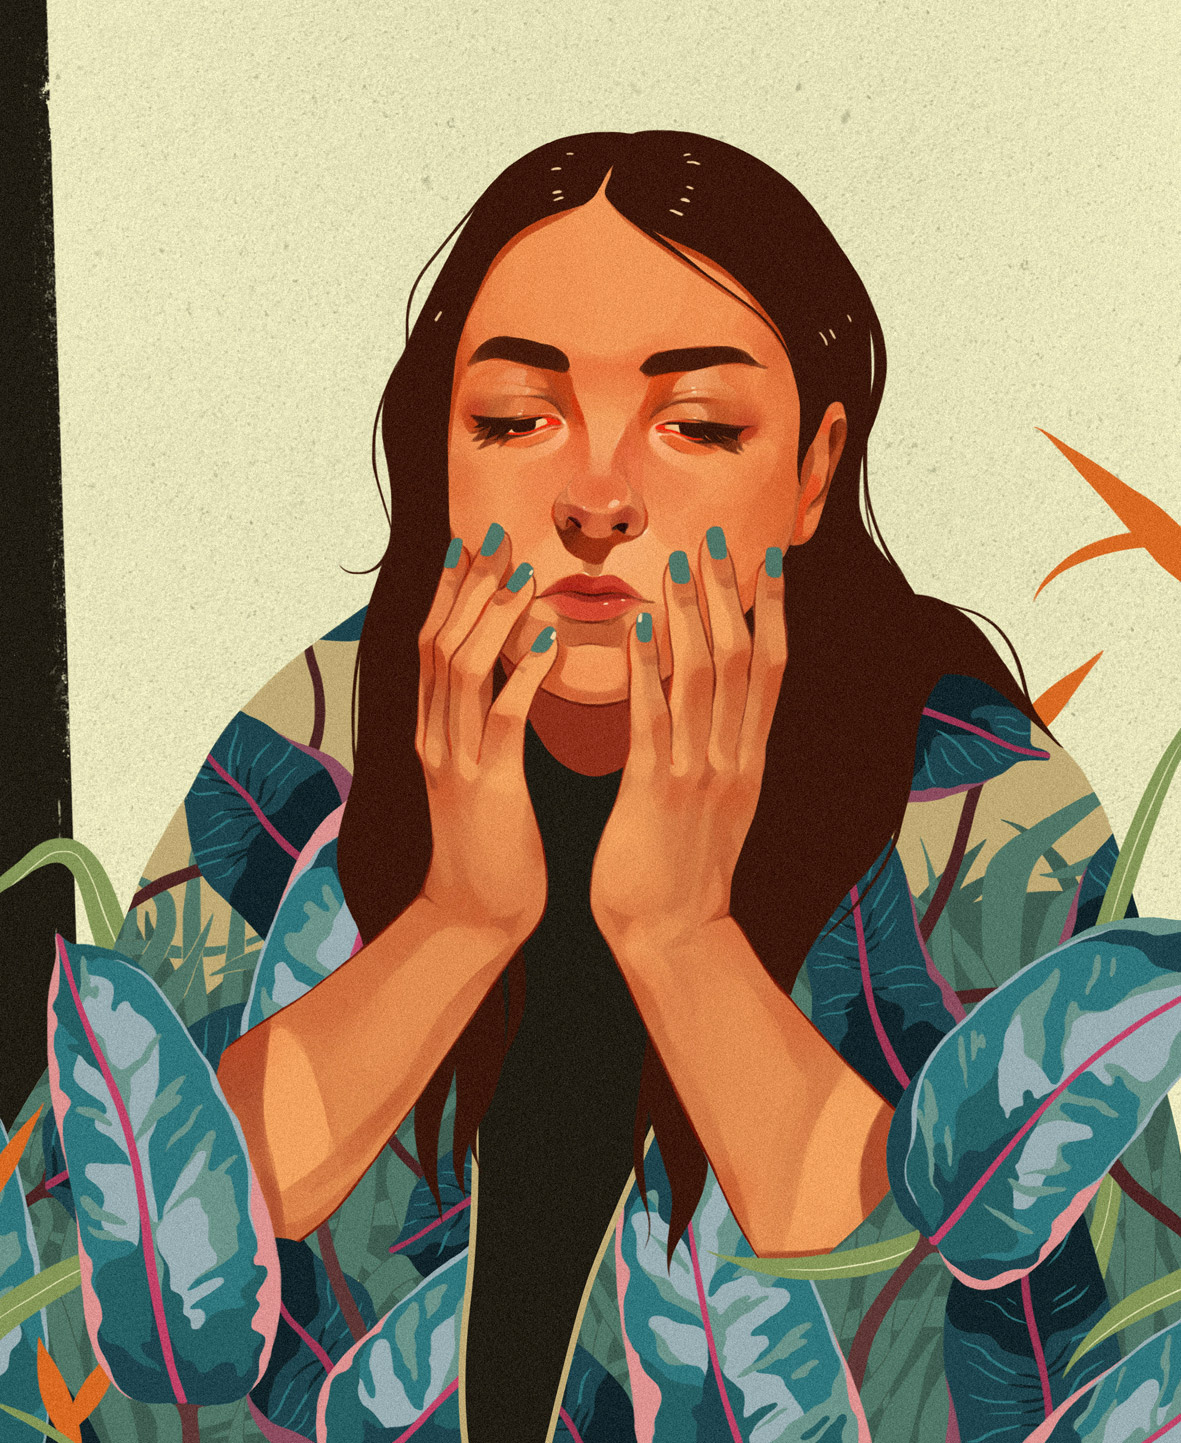 Enchanting Illustrations by Ana Godis